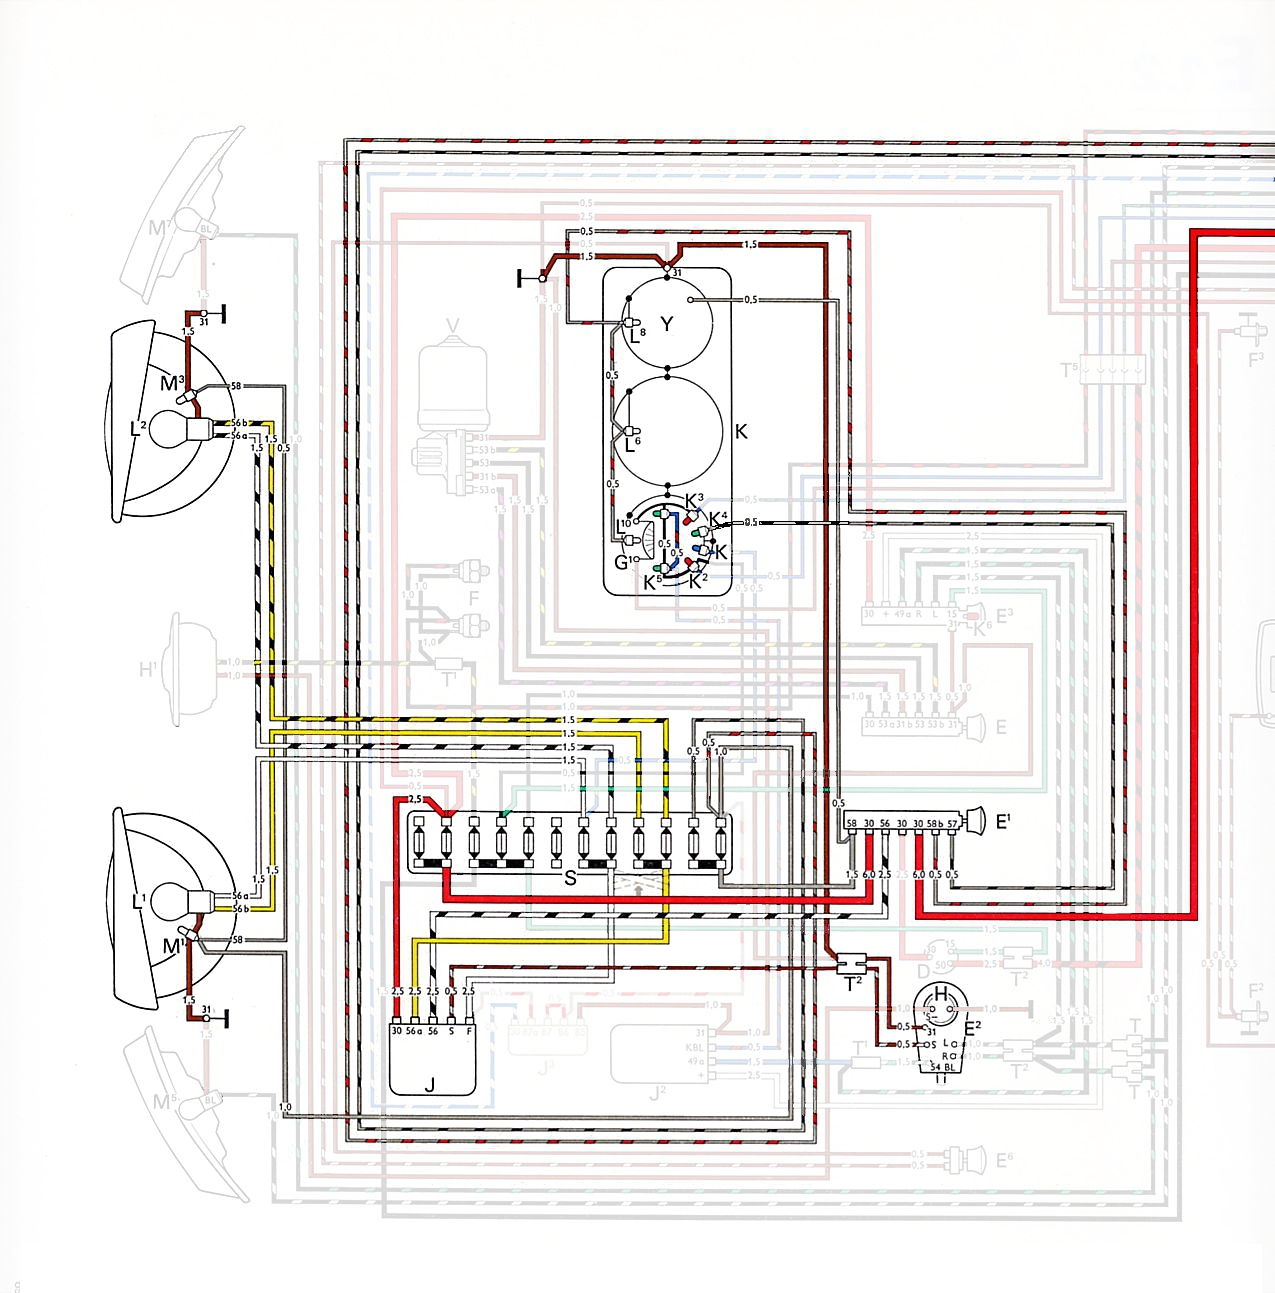 Type 2 Wiring Diagrams Switch Diagram